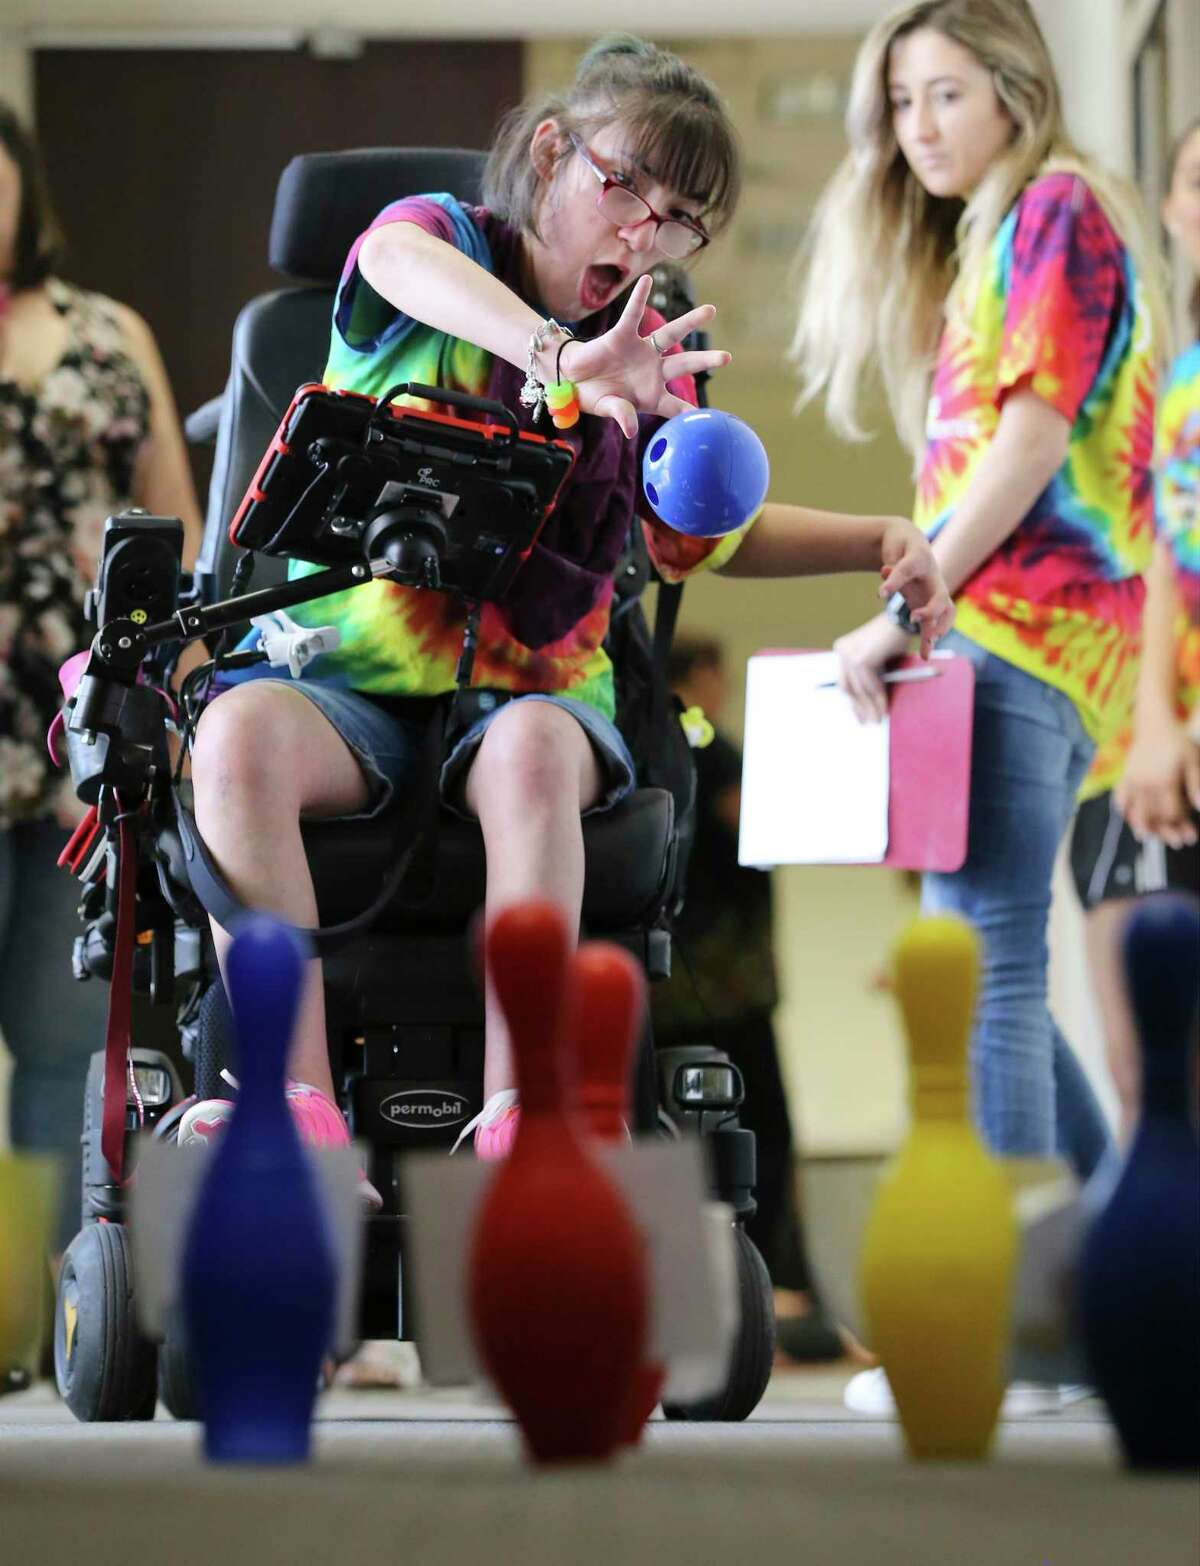 Kayla Janson, 19, plays a bowling-type game as children with communication disorders learn how to use alternative communication technology at Our Lady of the Lake University on Wednesday, June 26, 2019 during a weeklong summer program called Be AACtive Communicators. Janson has cerebral palsy. OLLU speech pathology students took part in the program as part of their course work and helped 12 kids aged 5 to 17 use tablet-like technology to supplement their communication skills. The free program has been around for three years. (Kin Man Hui/San Antonio Express-News)